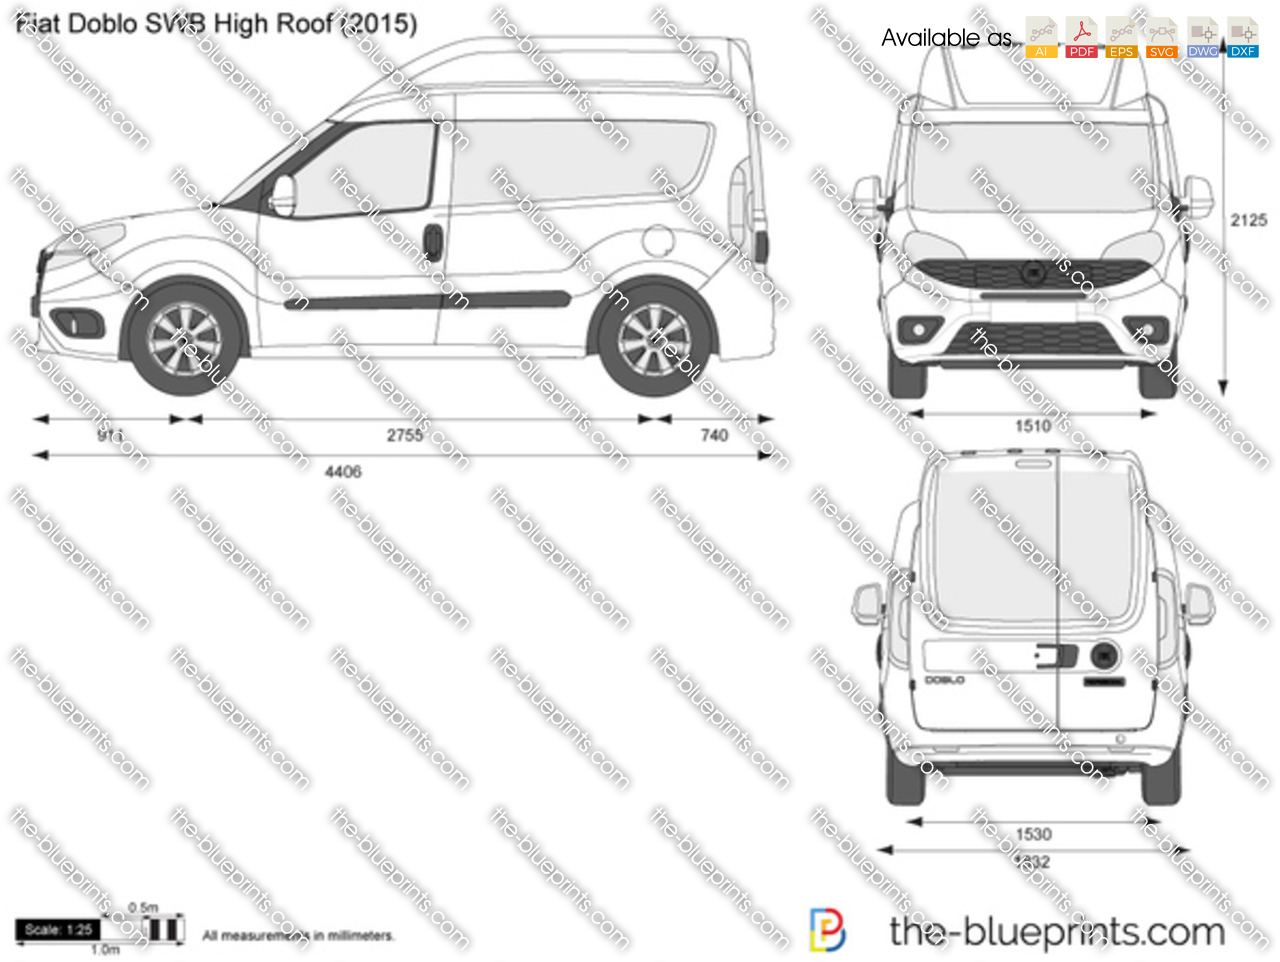 fiat doblo swb high roof vector drawing. Black Bedroom Furniture Sets. Home Design Ideas